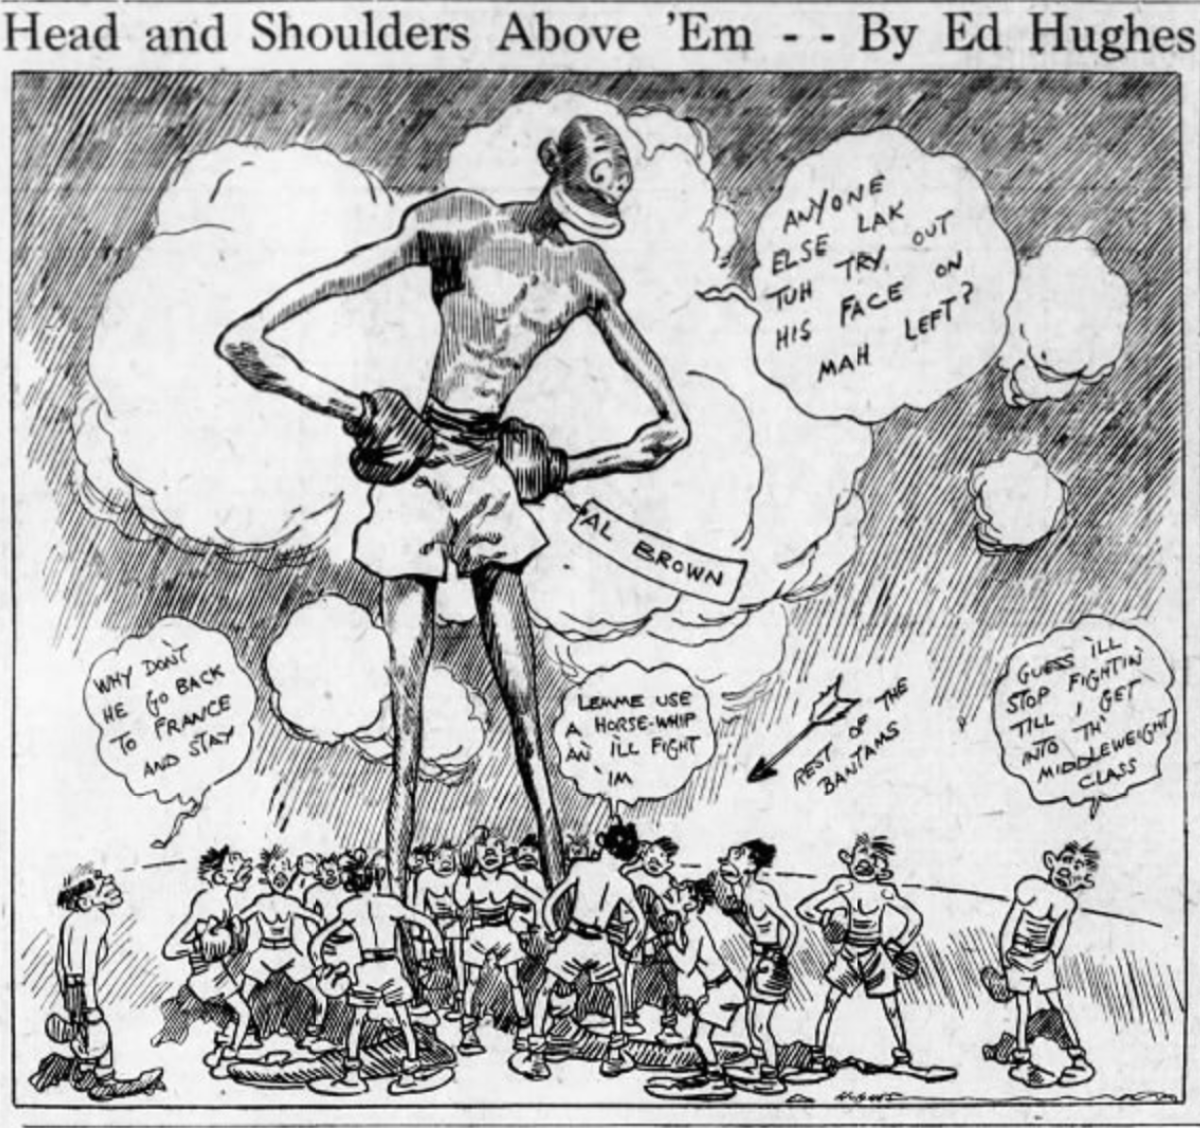 Cartoon originally published in ' The Brooklyn Daily Eagle',  June 19th, 1929